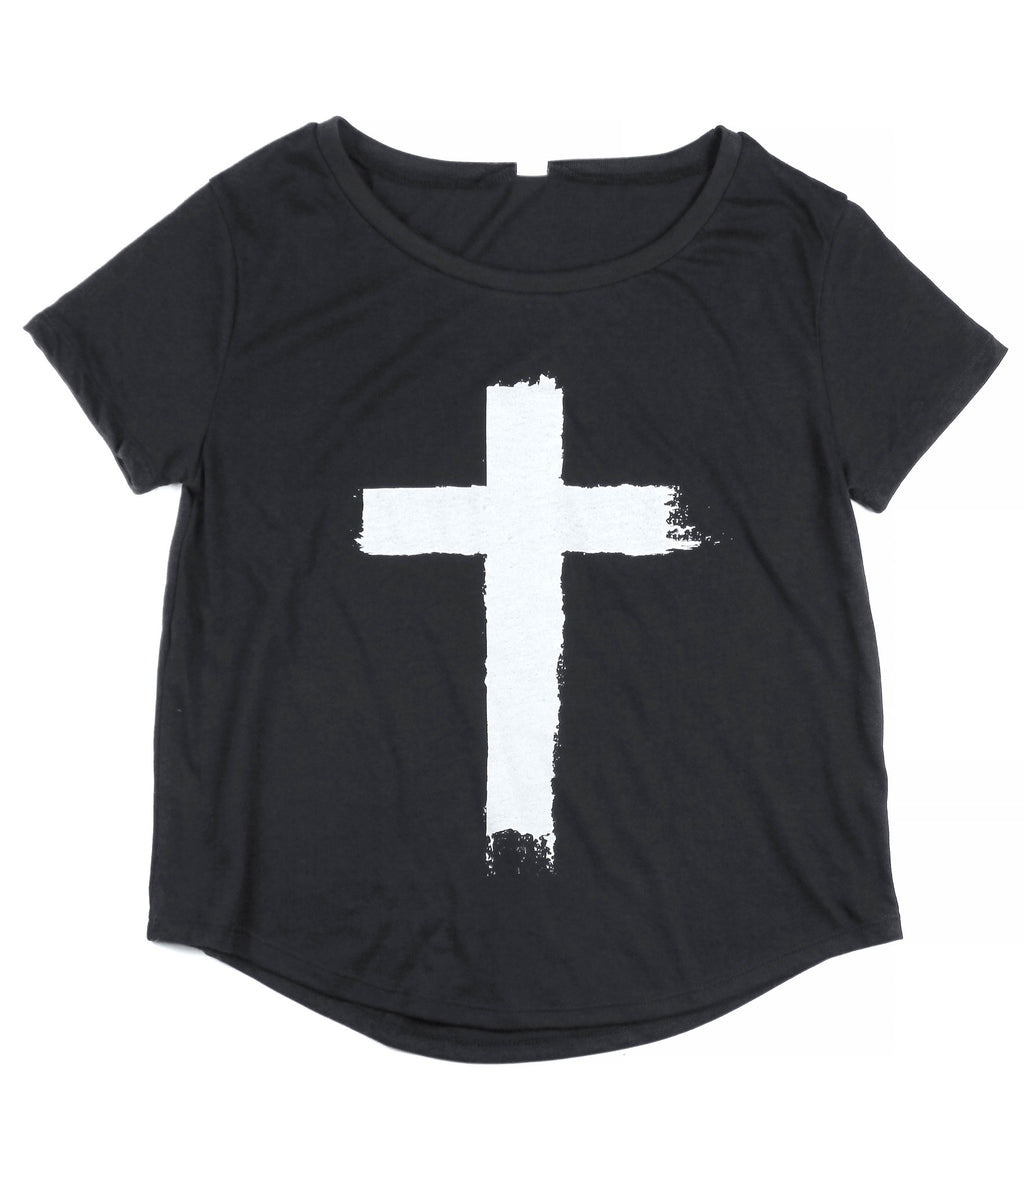 CROSS BLACK WOMEN'S SCOOP NECK T-SHIRT